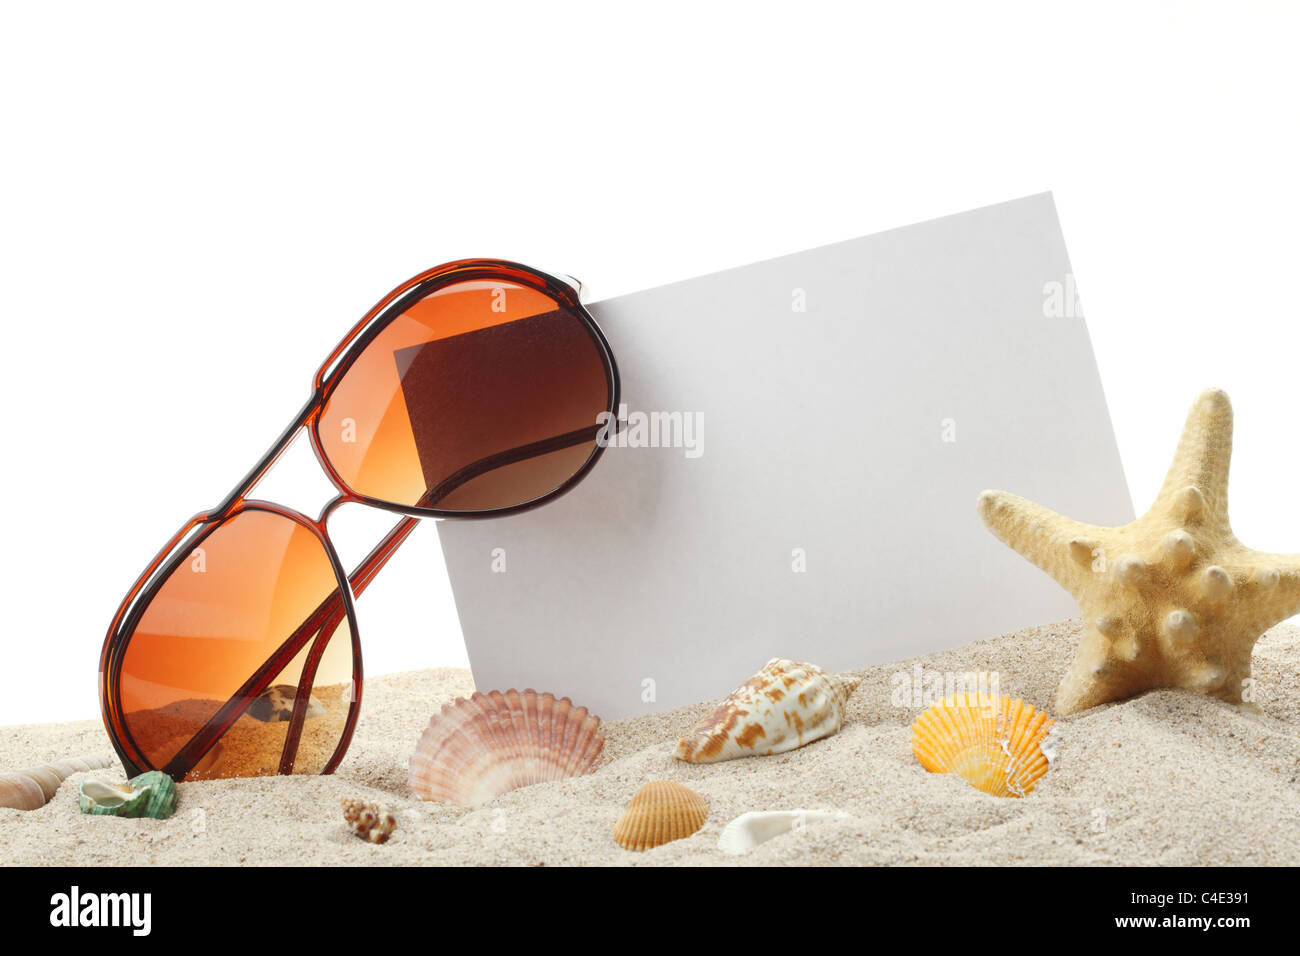 summer holidays memories card from beach with shells and sunglasses on sand - Stock Image